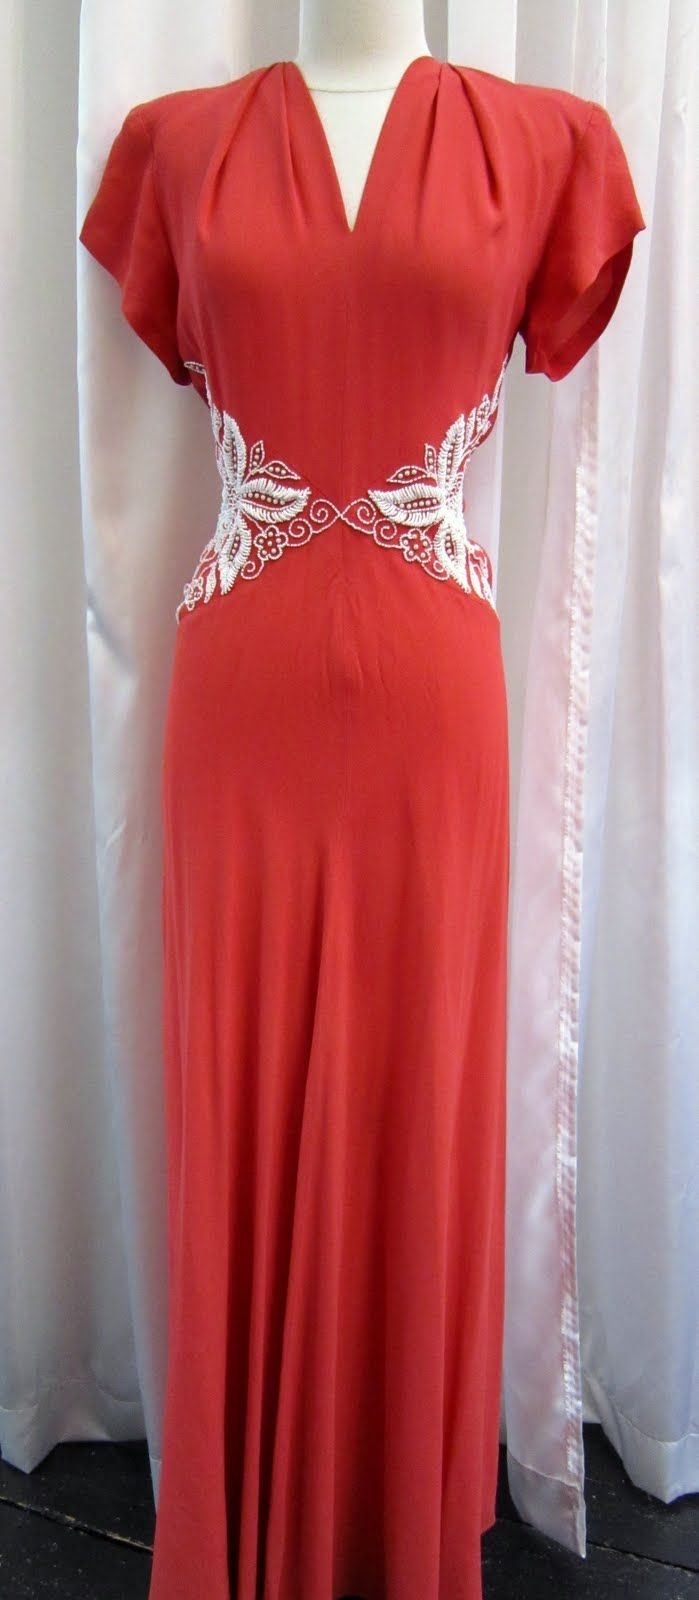 oh my diese abnäher sind so up to date   1940's coral rayon draped gown..